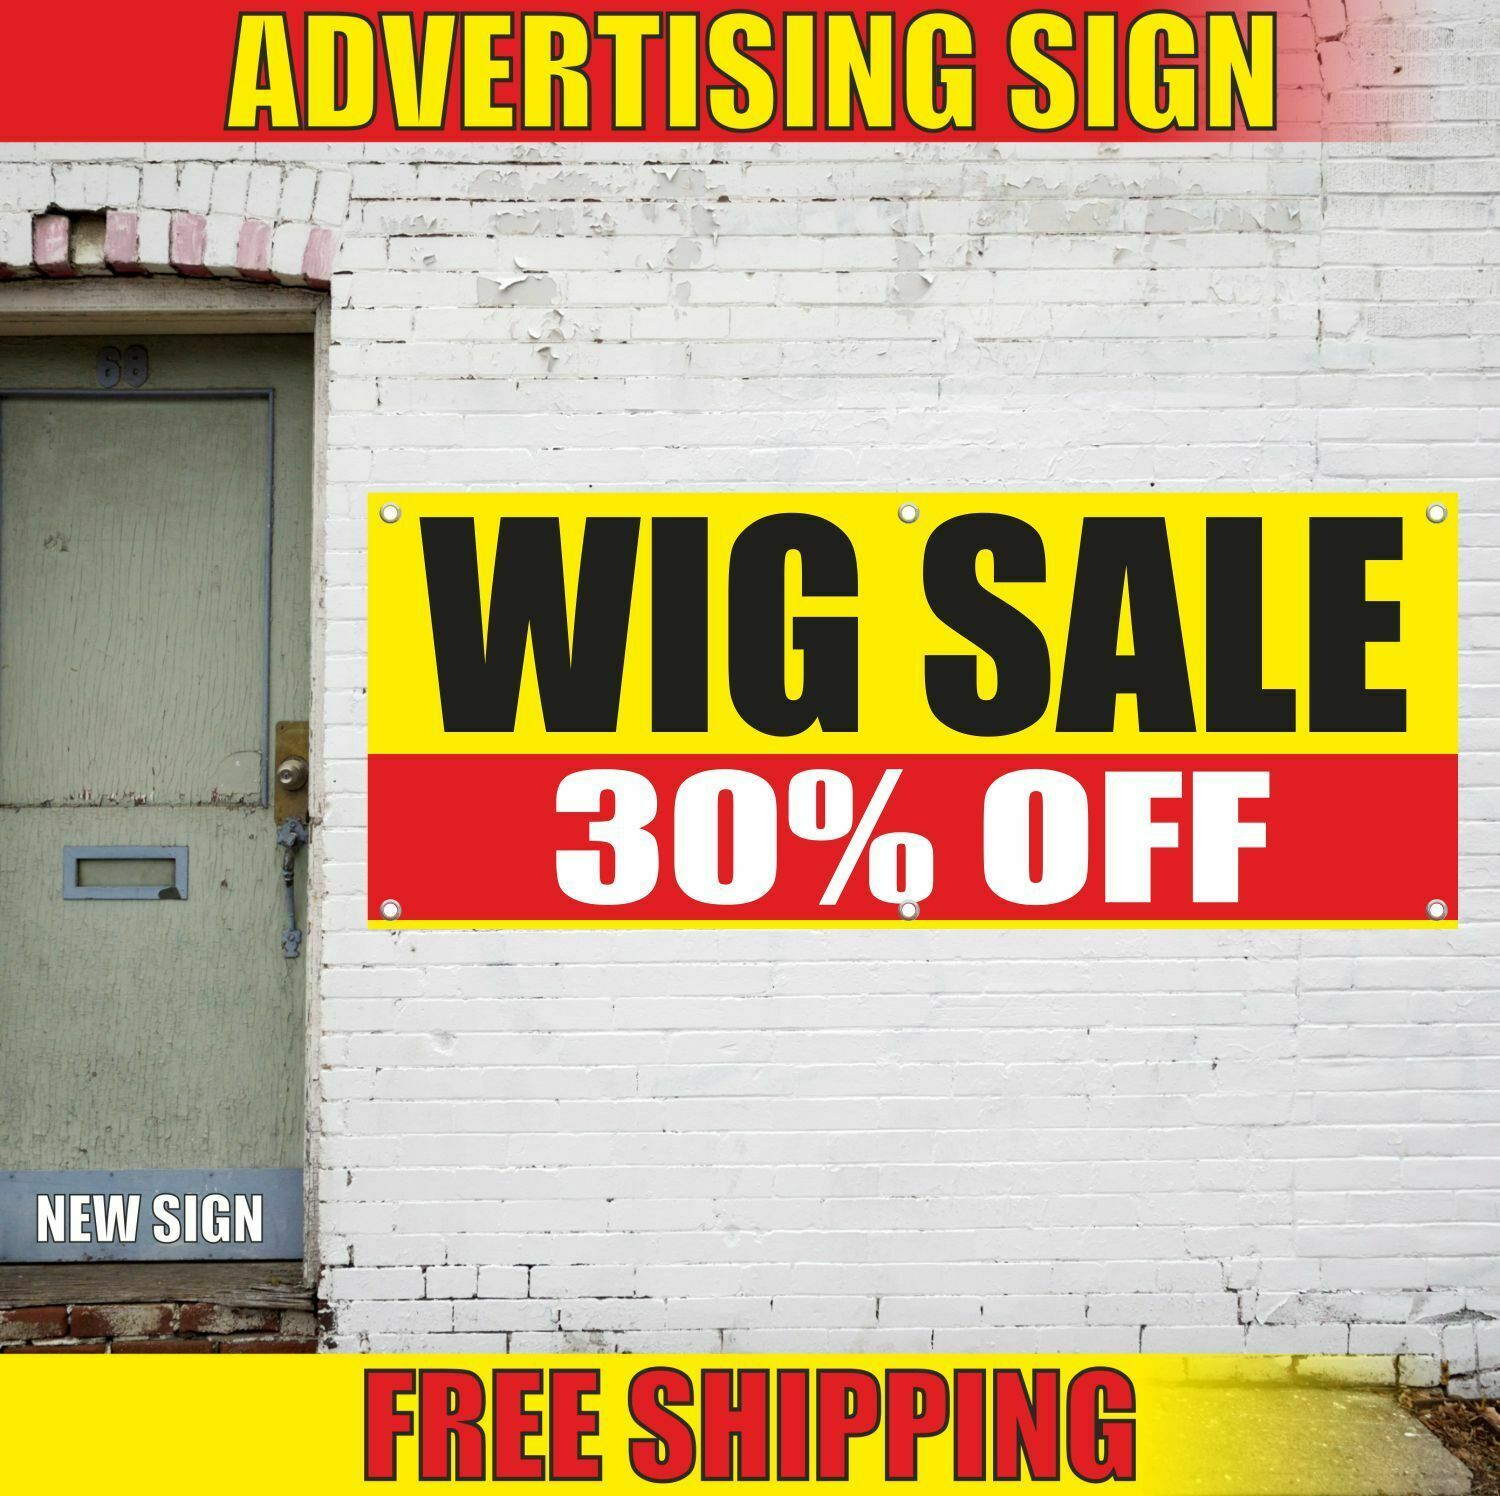 Wig Sale 30 Off Advertising Banner Vinyl Mesh Decal Sign Toupee Hair Discount